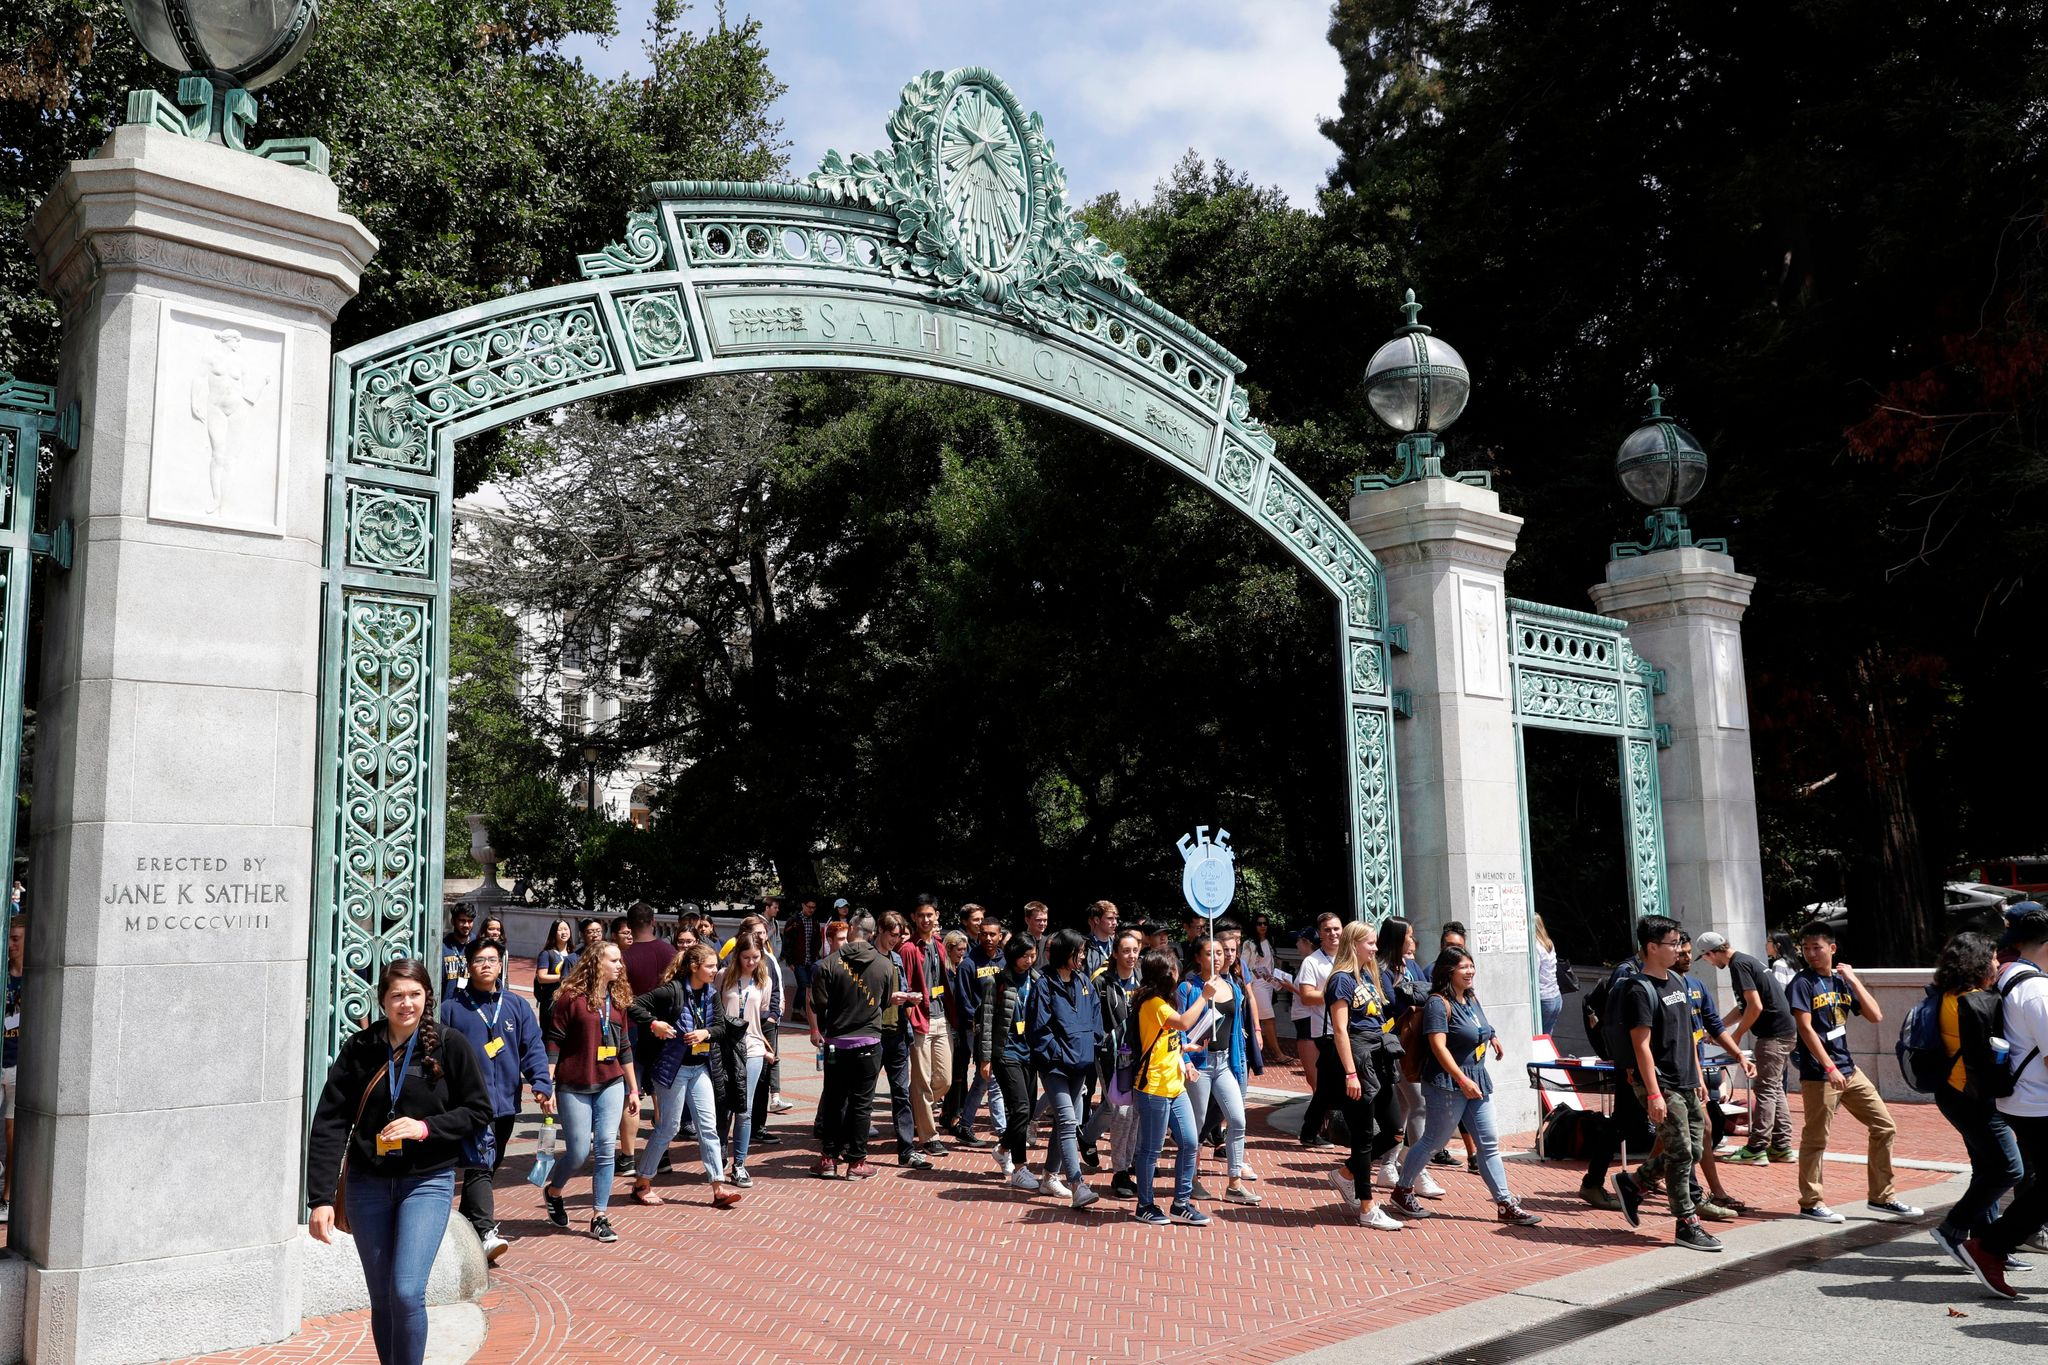 UC Berkeley employee celebrated attack on conservative: I feel 'so much better'